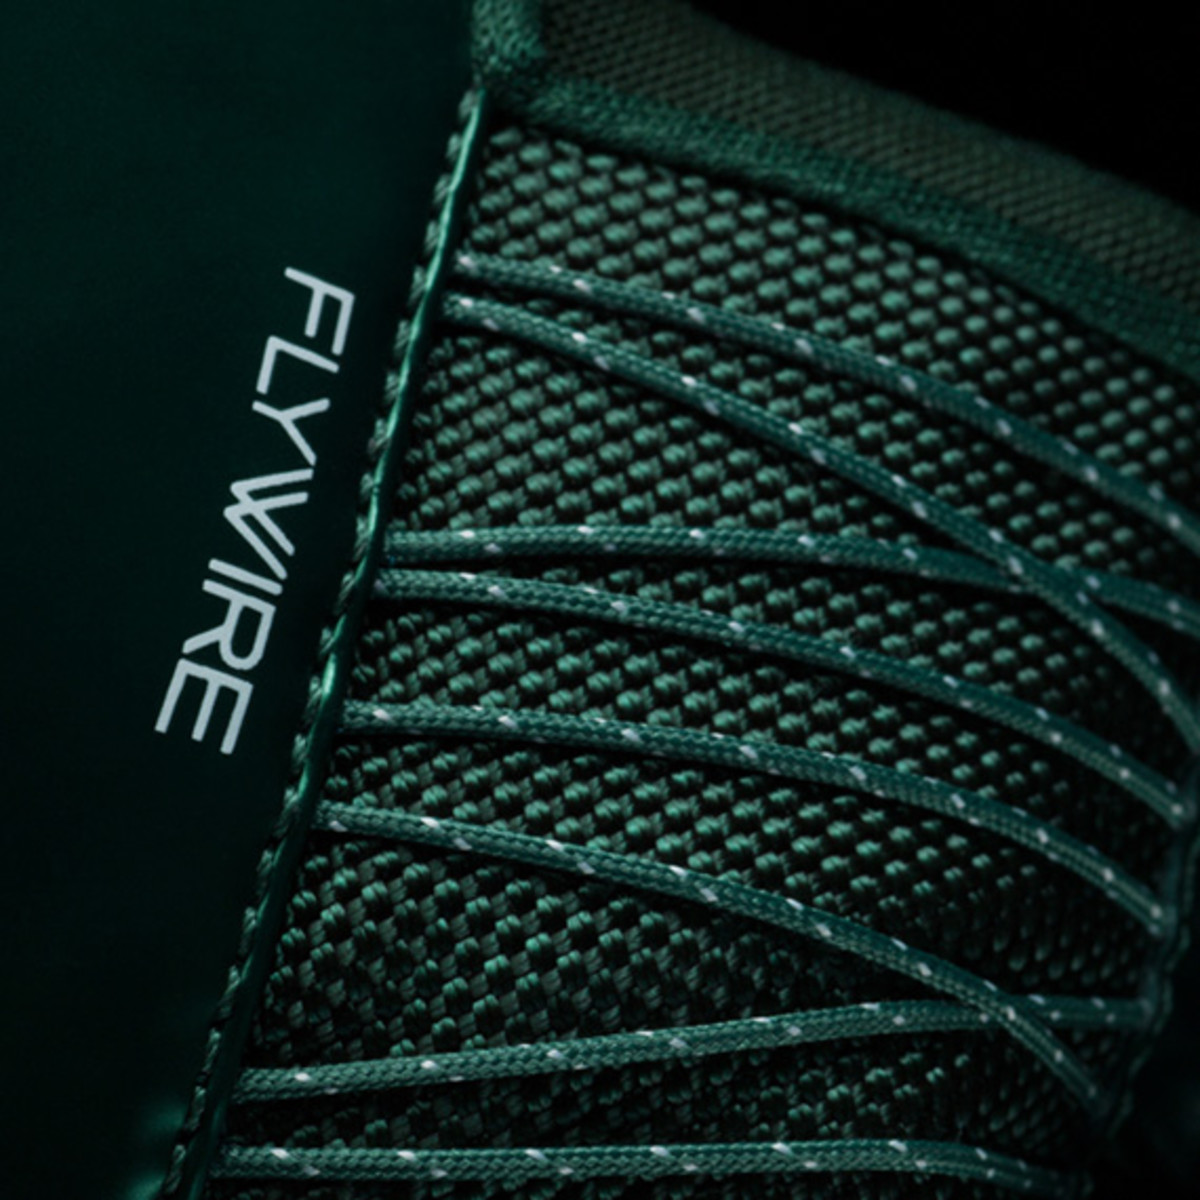 darrelle-revis-nike-zoom-revis-officially-unveiled-21